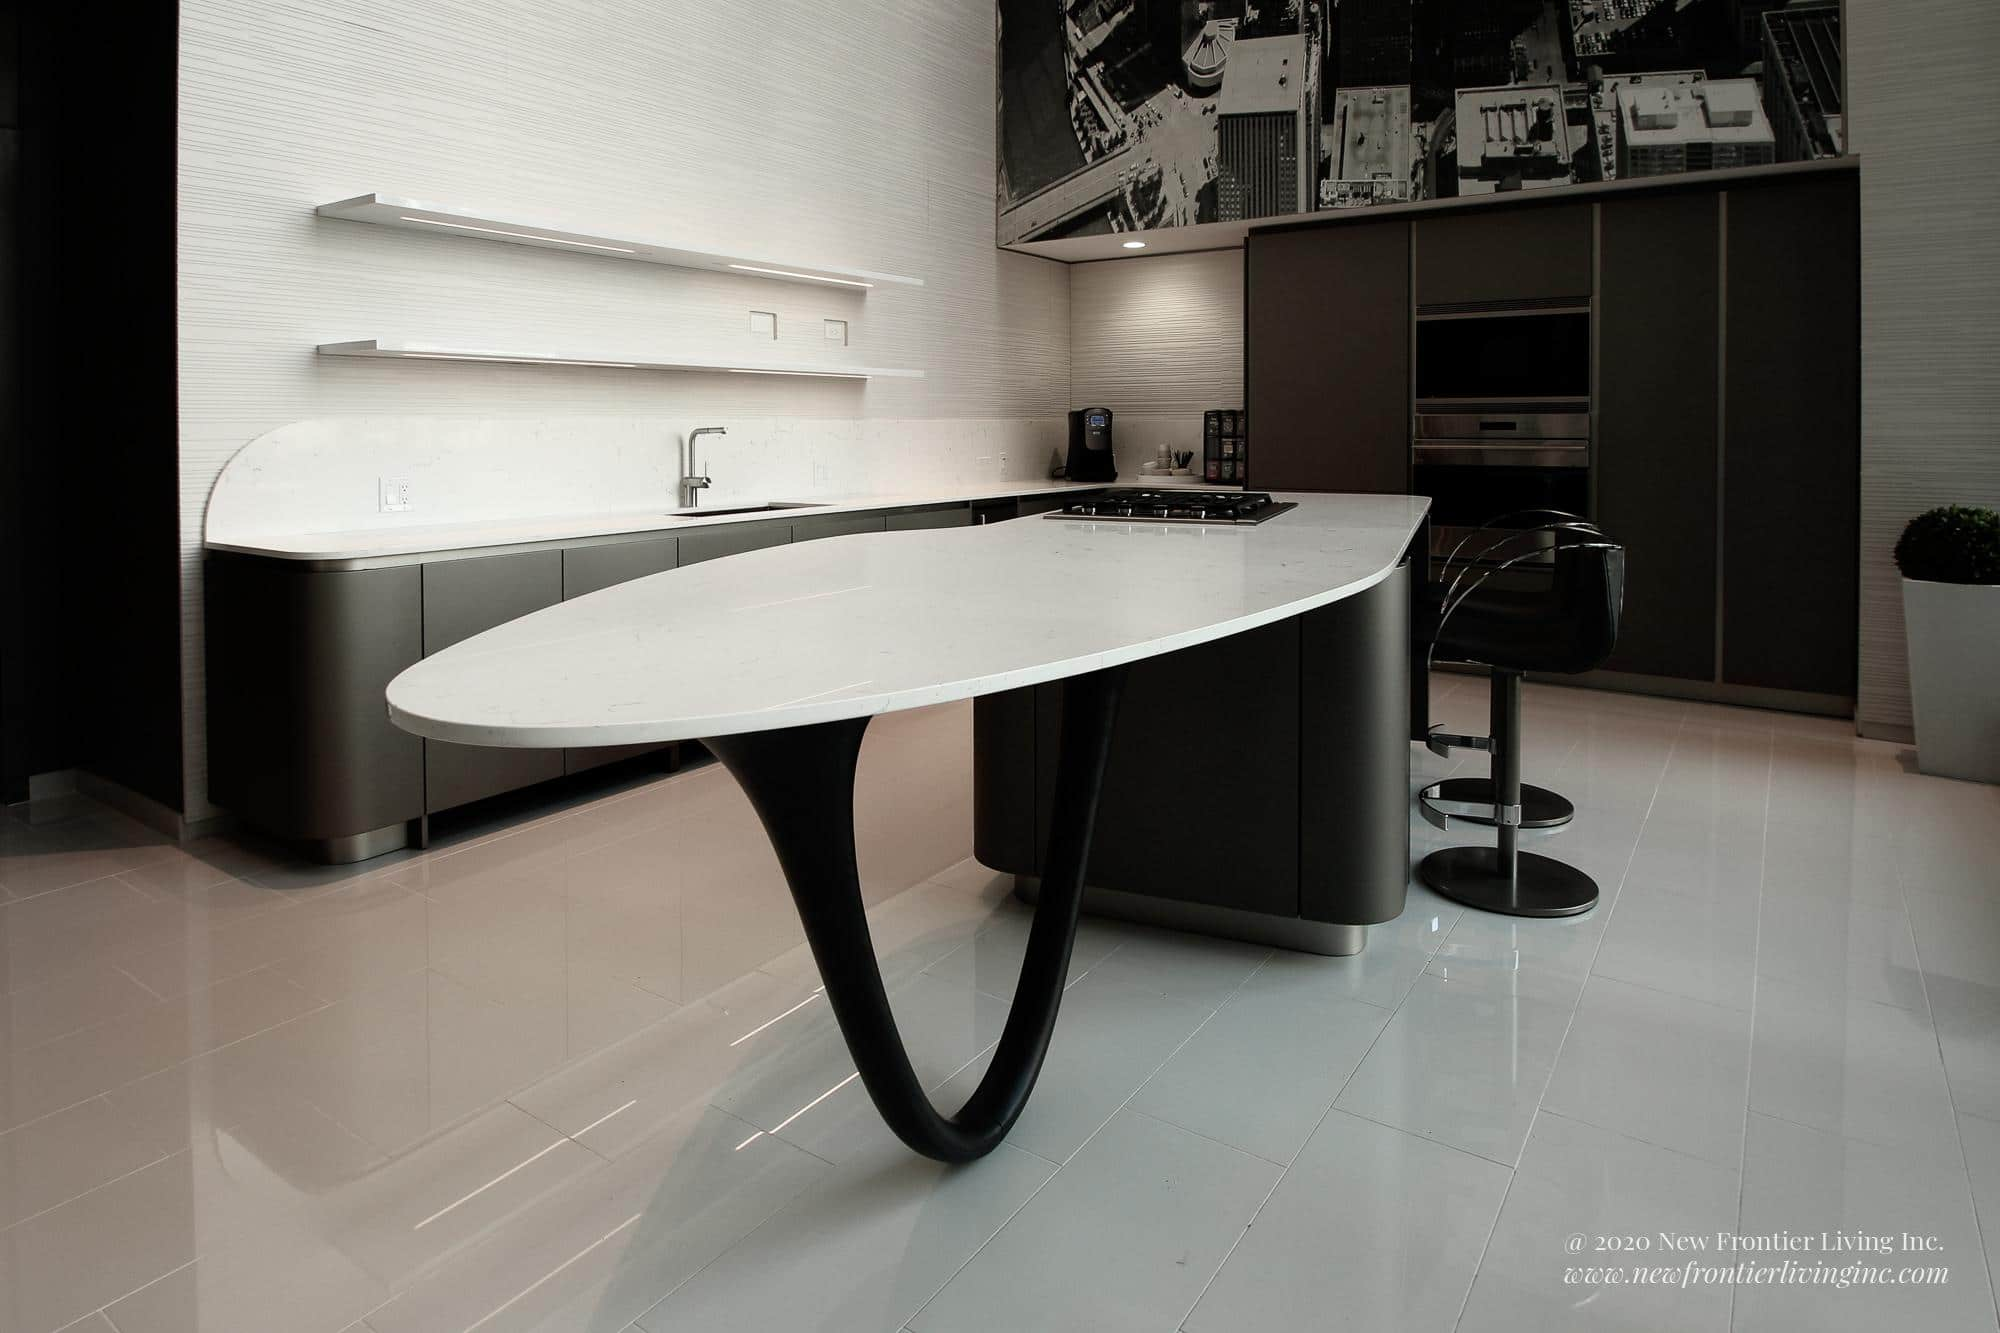 Black kitchen with white countertops and island, island in the shape of a spaceship